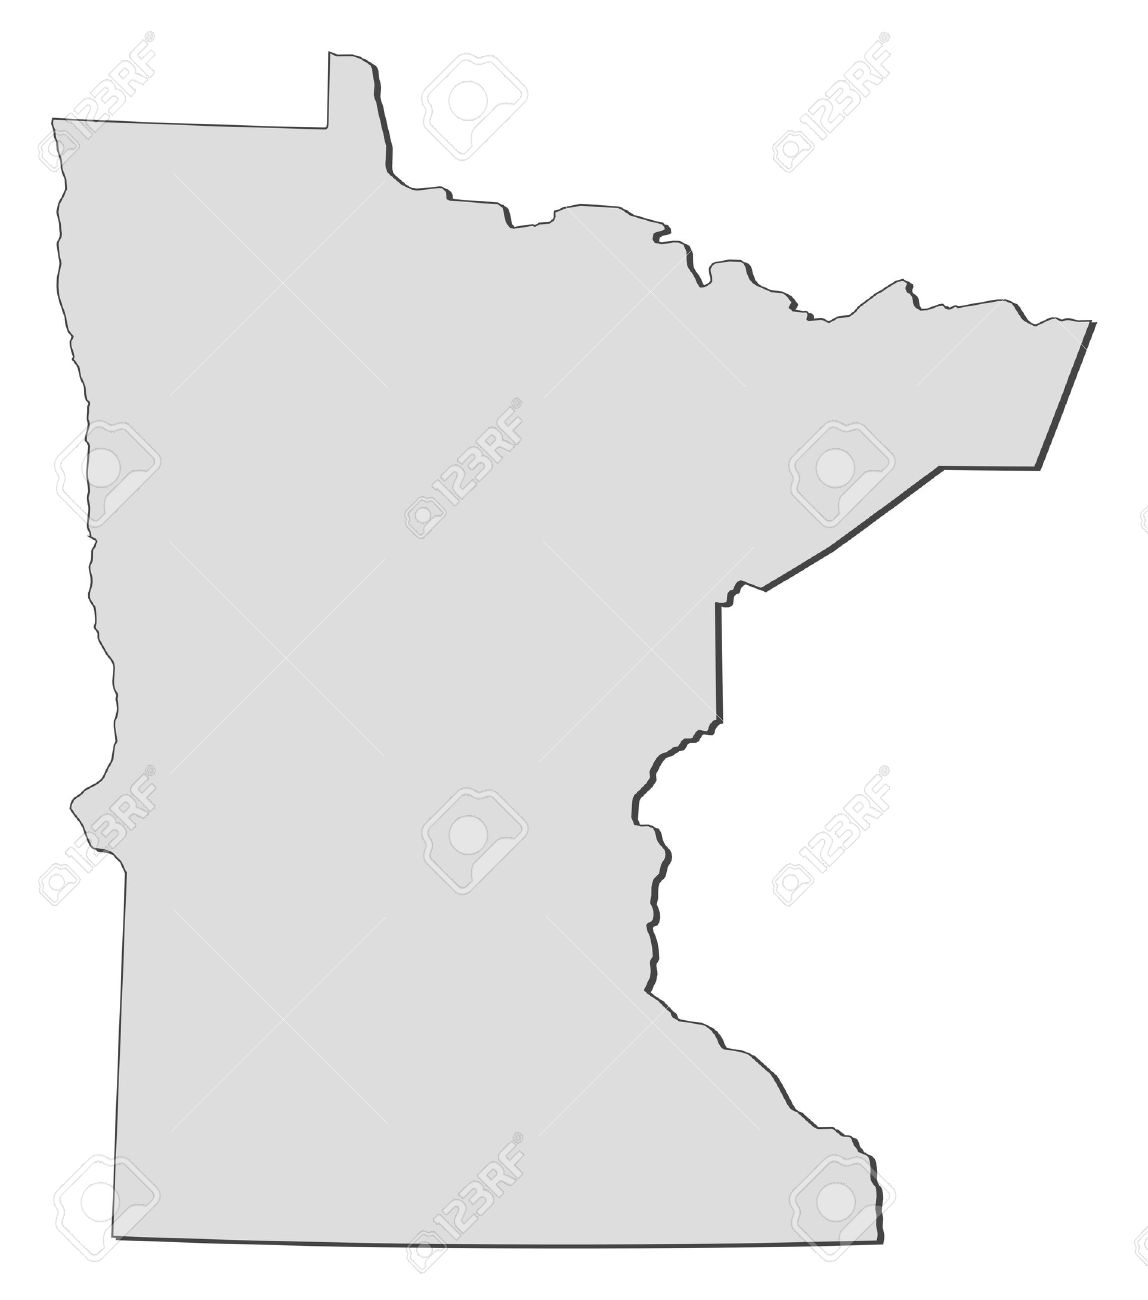 Map Of Minnesota A State Of United States Royalty Free Cliparts - State of mn map